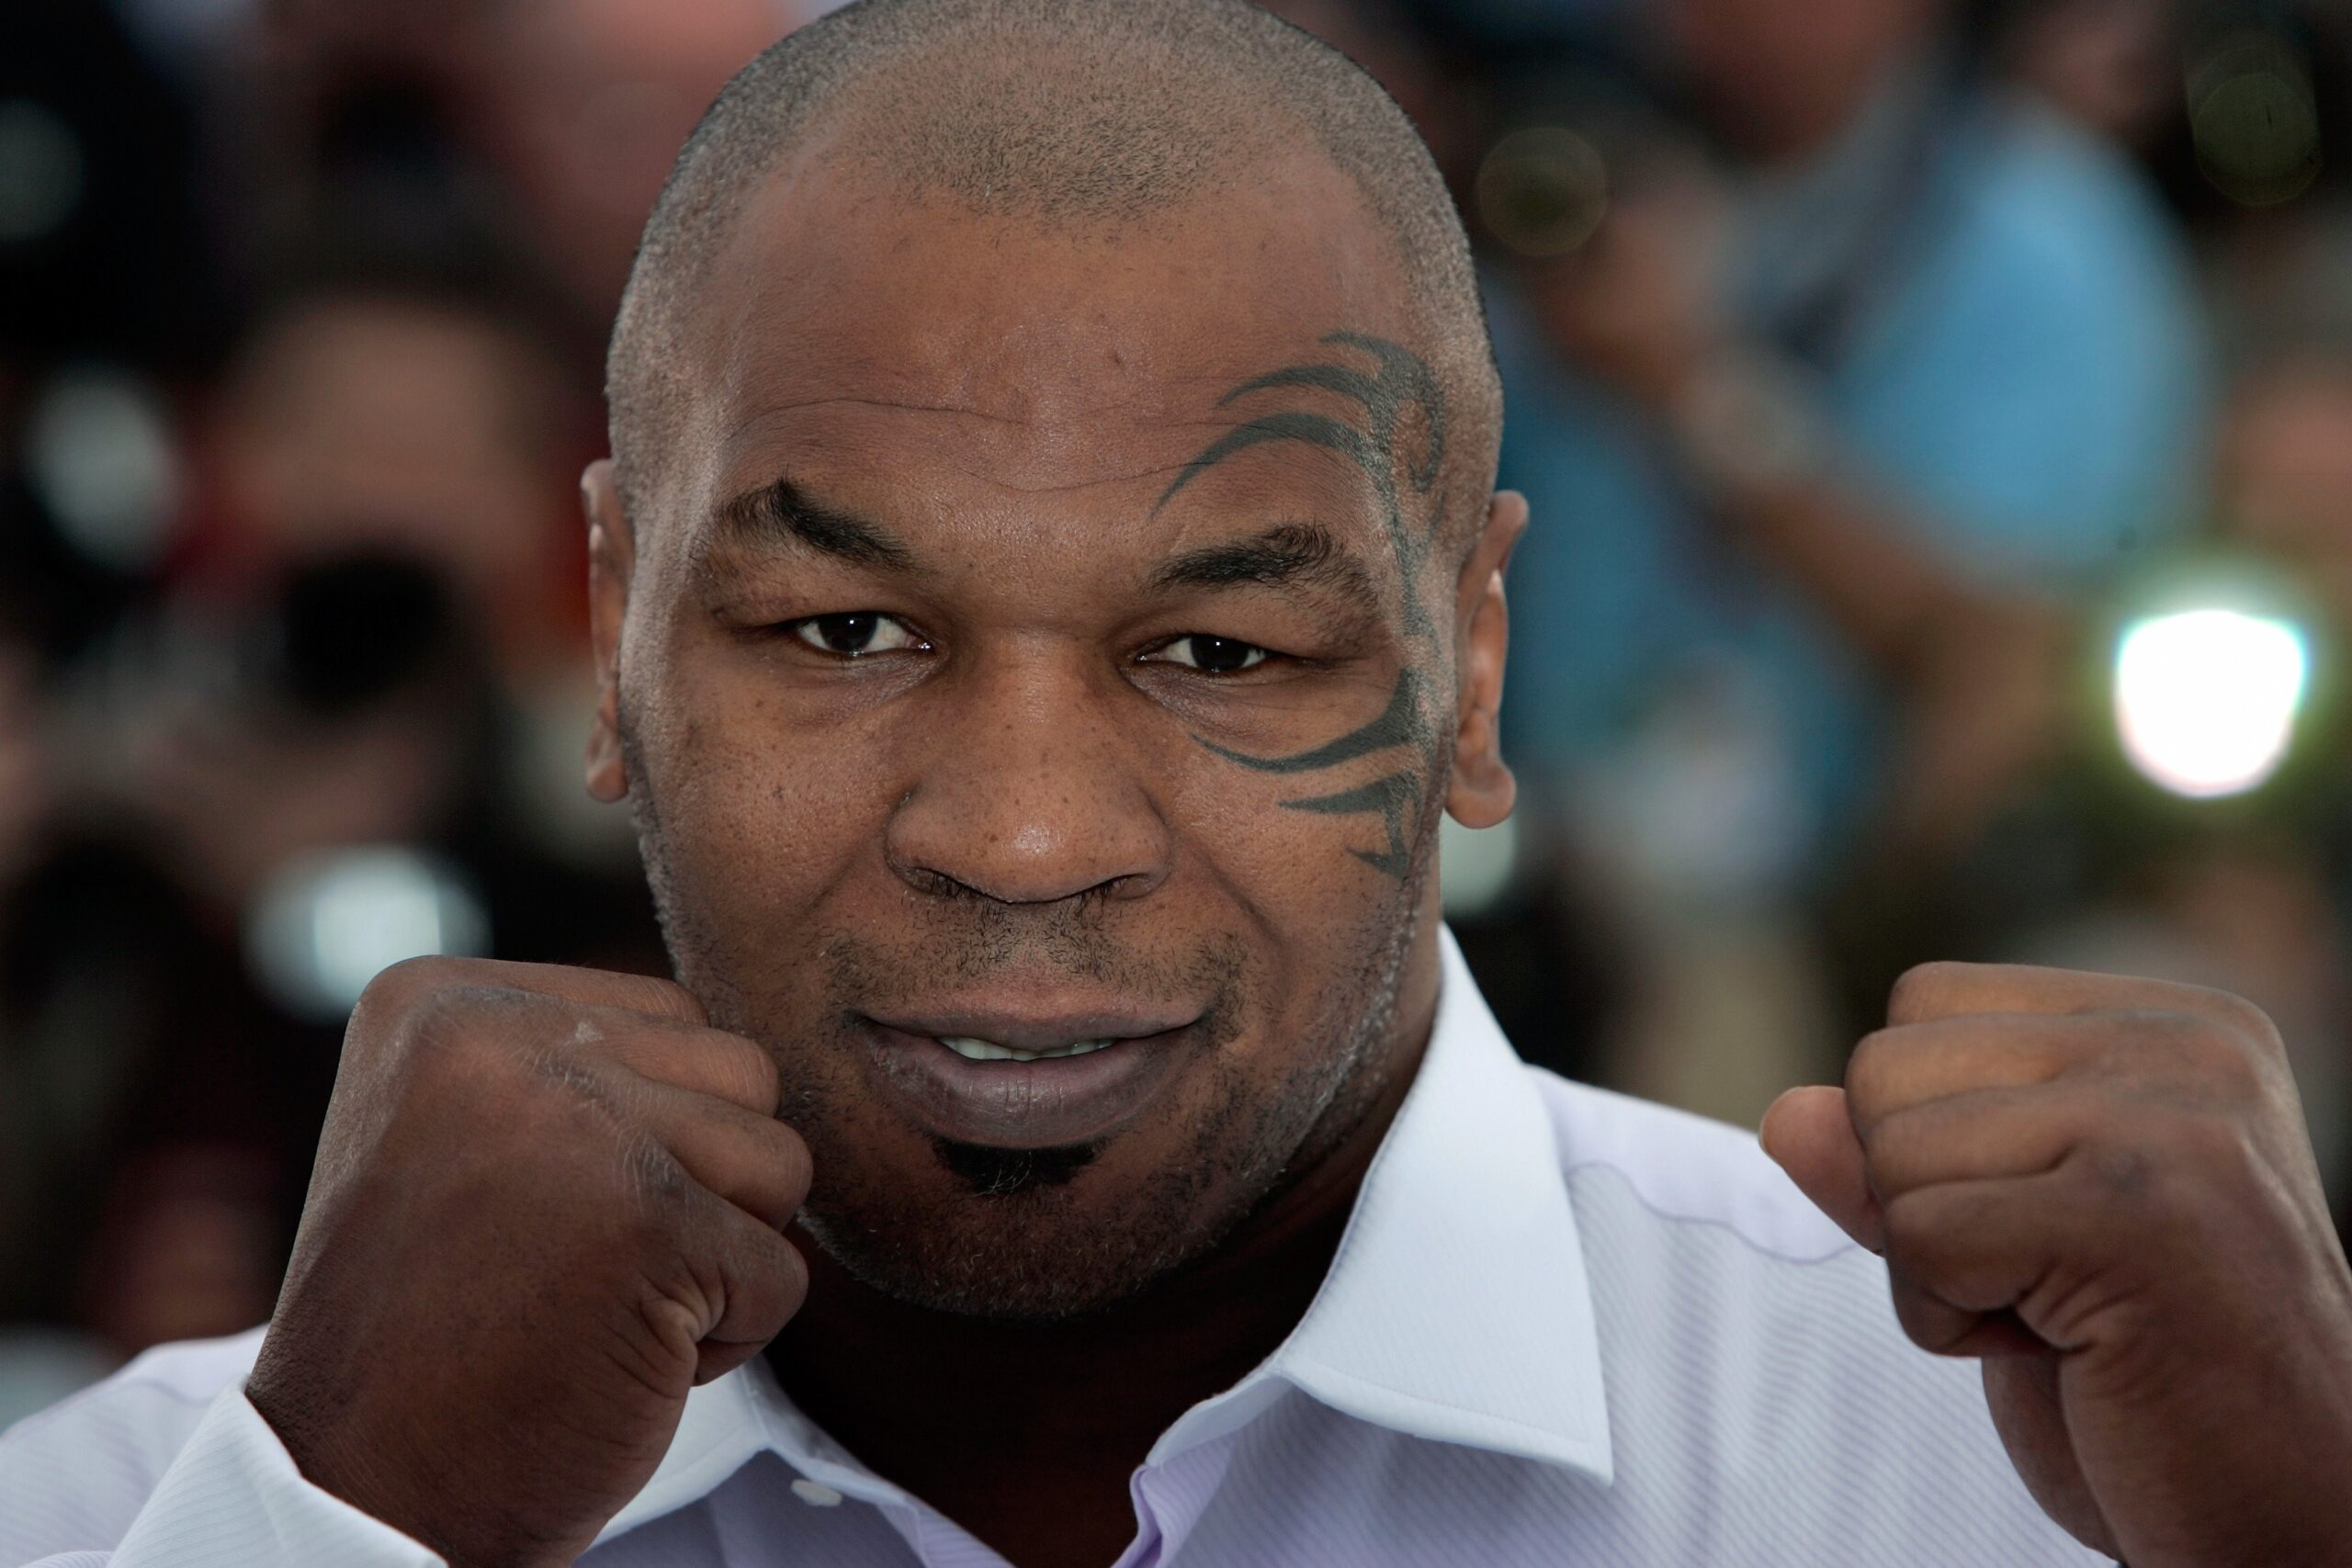 Mike Tyson Wallpapers 3